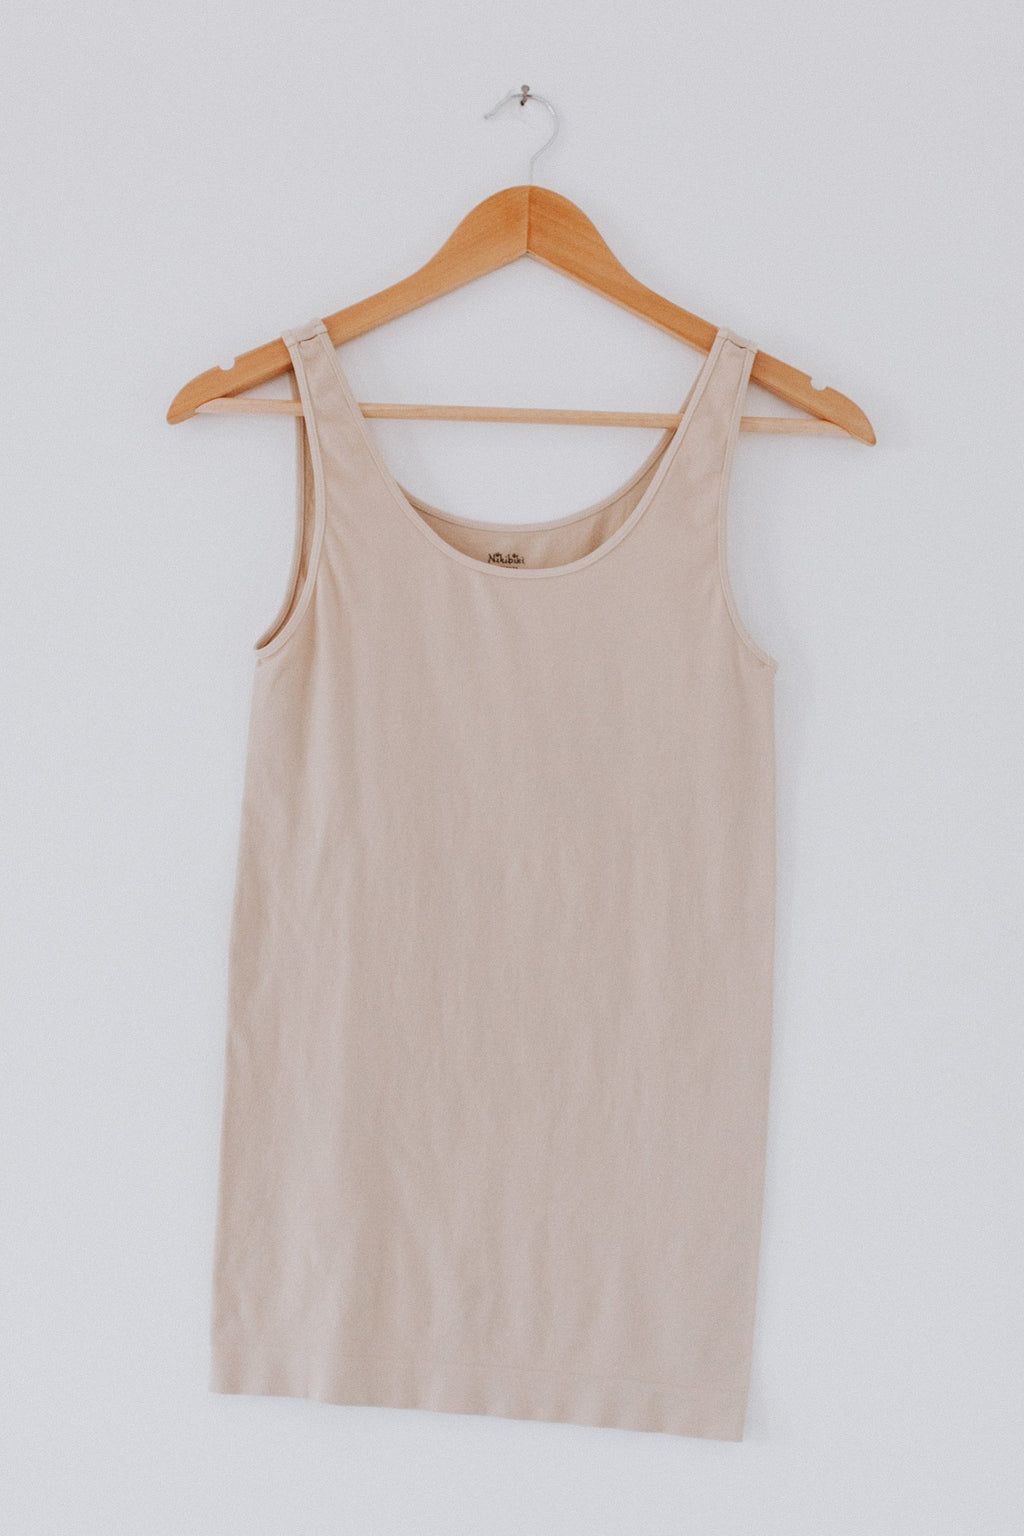 Dream Tank // Nude